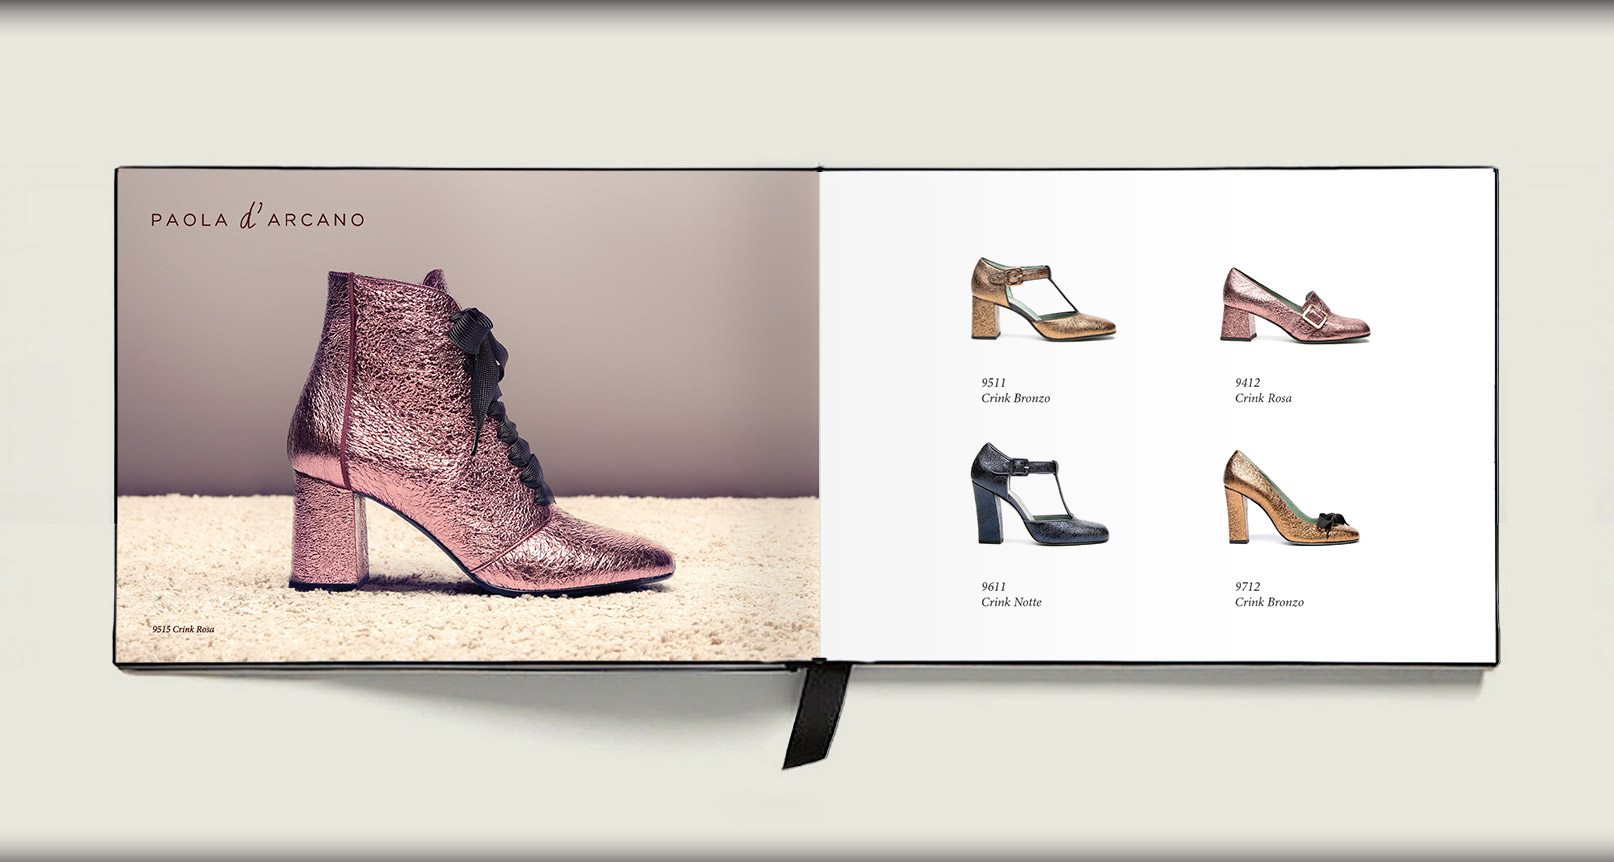 Advertising Paola D'Arcano Shoes Made in Italy - 4